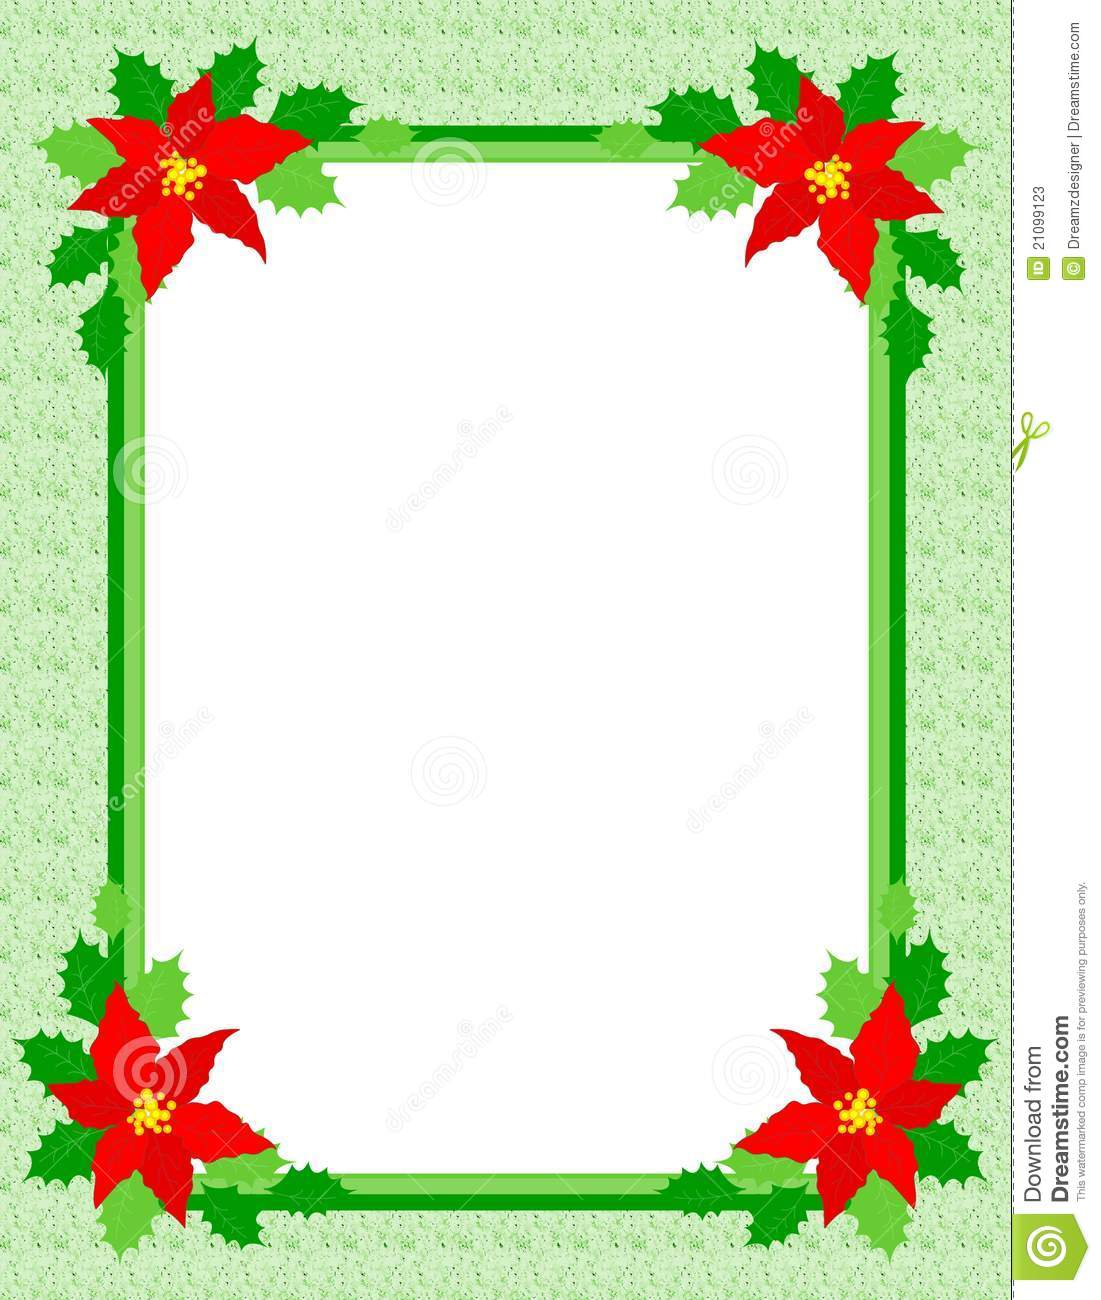 Christmas Frame Poinsettia moreover Beauty Border Crochet Patterns Make Handmade A C as well Festive Border Poinsettia Flower Thanksgiving Holly Ivy Mistletoe Over Old Parchment Background further Christmas Card Border Stock Illustration further B B E A B C Cc Yuyu Crossstitch. on pointsettia border